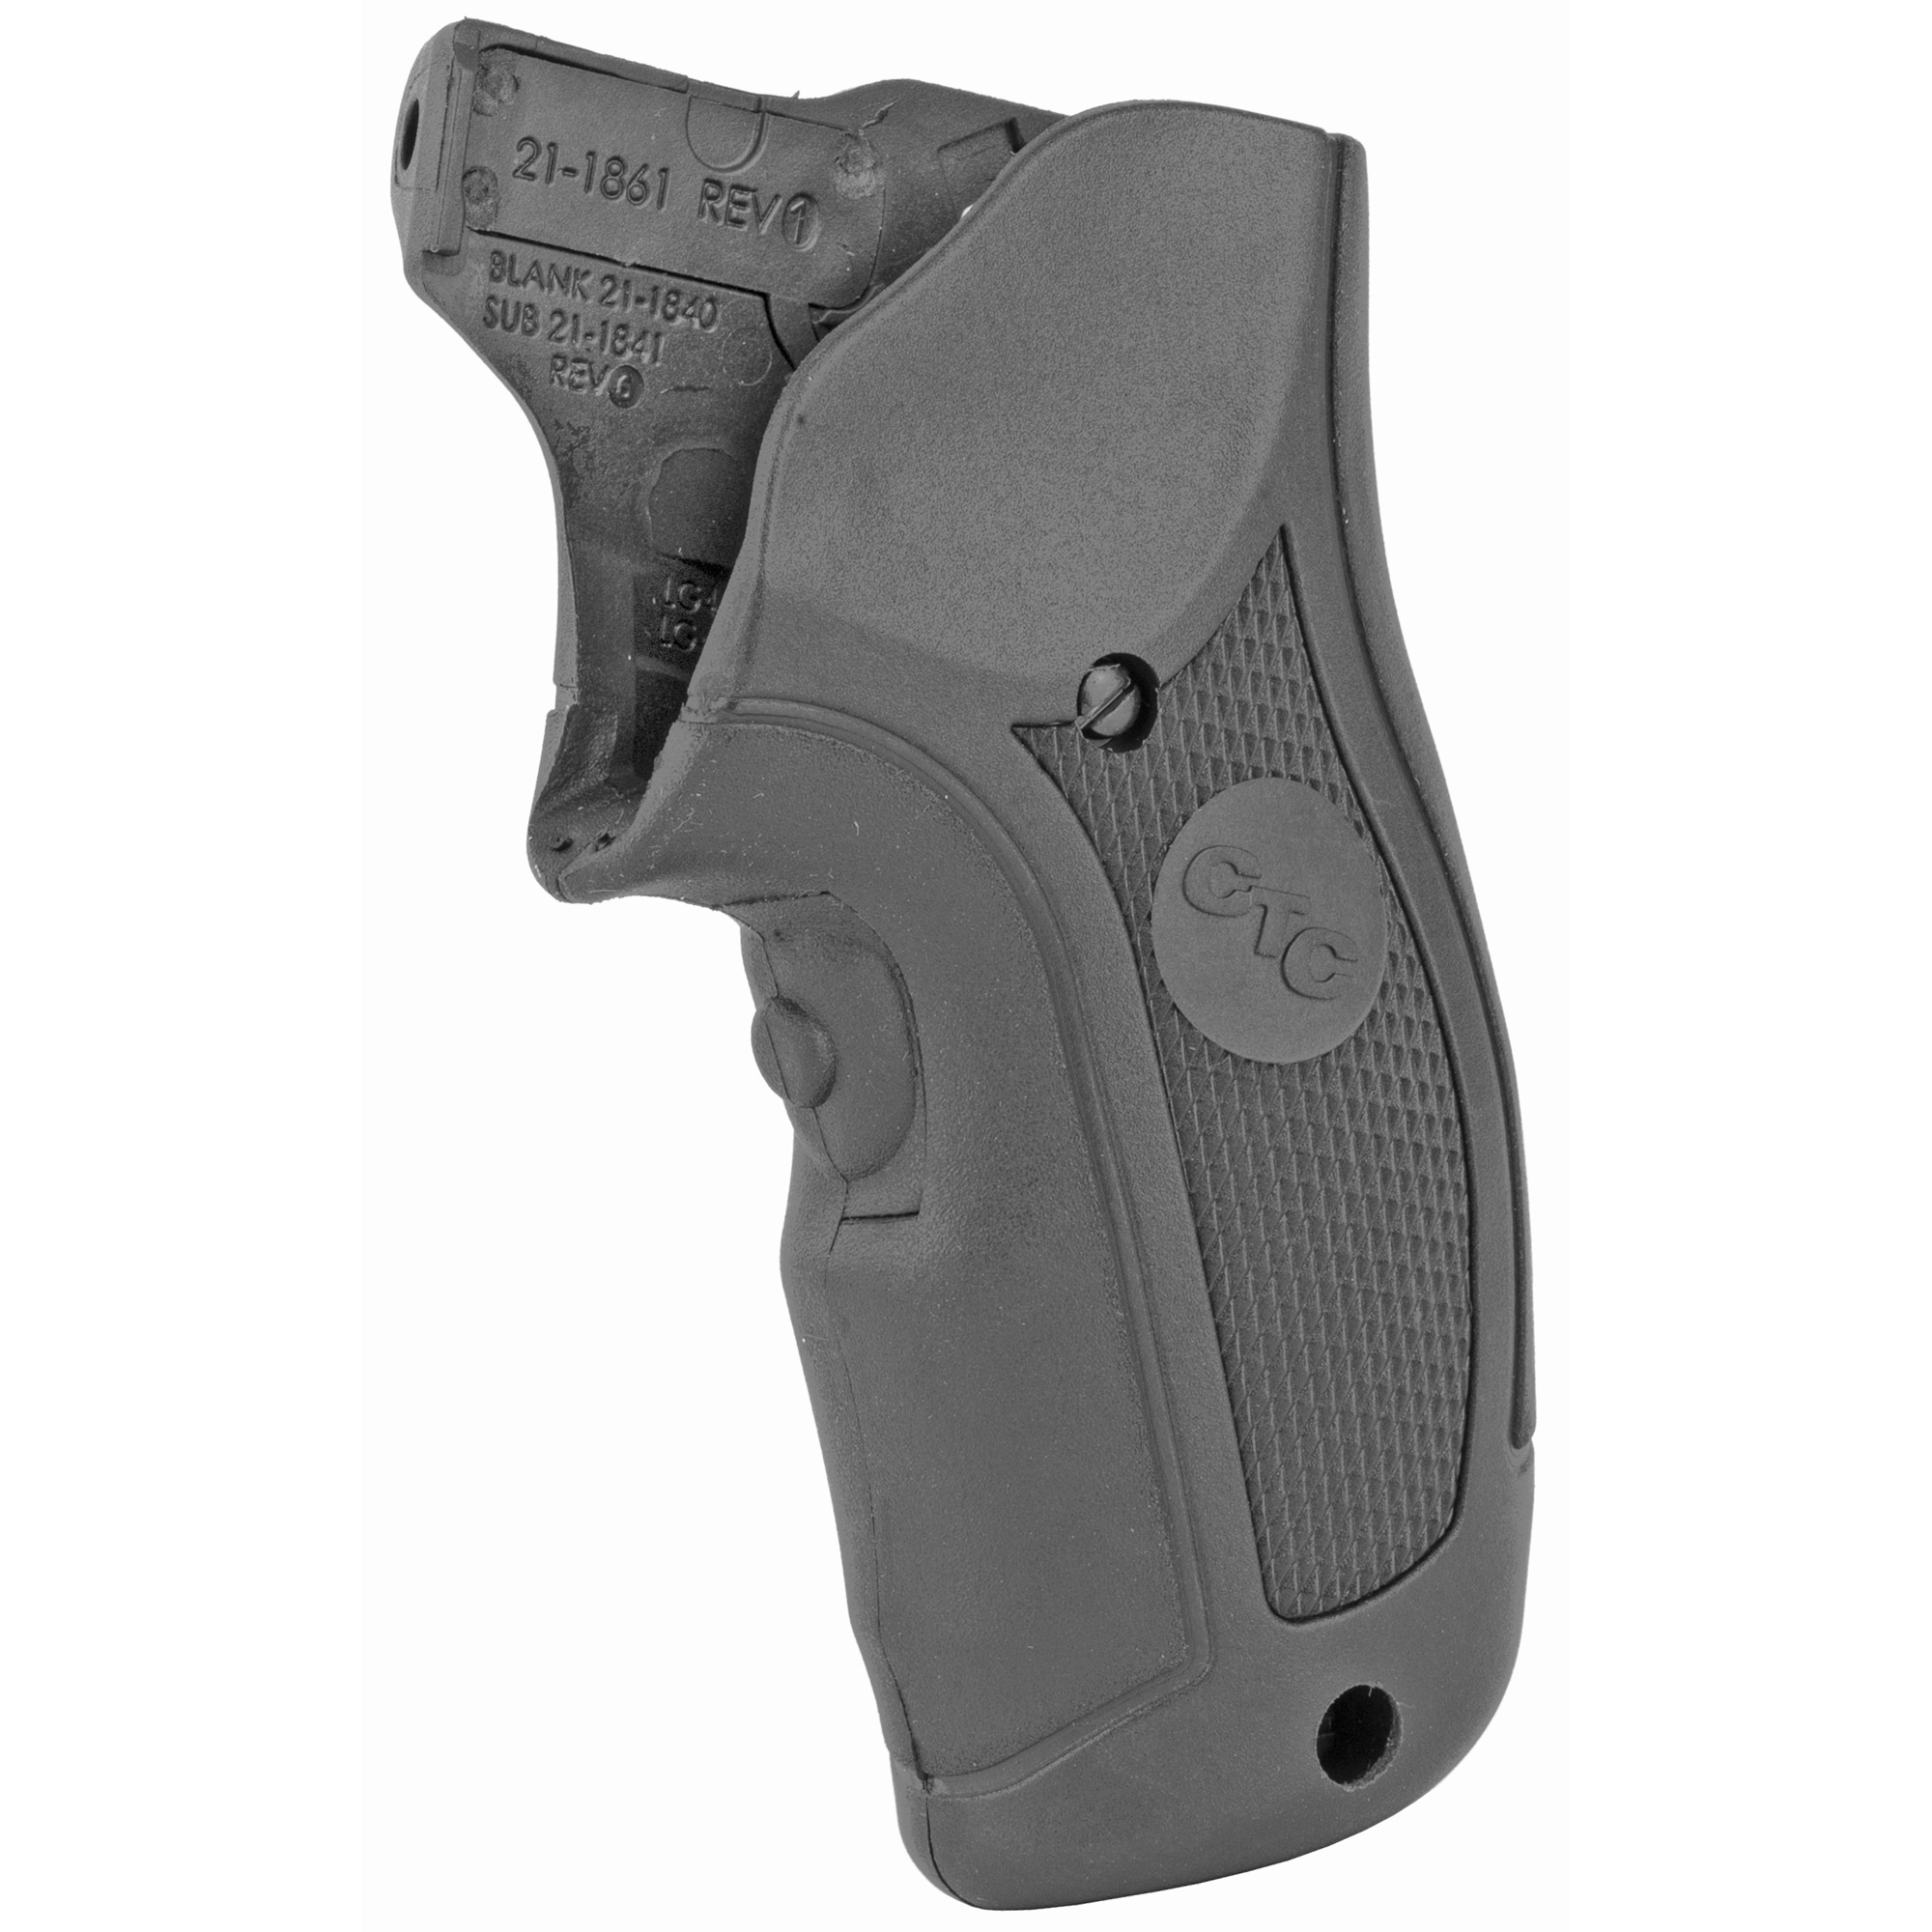 """LG-415 Lasergrips(R) are designed to fit Ruger LCR and LCRx revolvers by simply replacing the factory grips. This laser sight features Crimson Trace's famed Instinctive Activation(TM)"""" which activates the laser when the firearm is held in a natural firing grip. Laser activation button is located in the front"""" and the unit includes a Master On/Off Switch for completely powering down the unit. With battery life of over four hours and fully adjustable for windage and elevation"""" the LG-415 is quickly user-installed in moments with zero alterations to the firearm."""